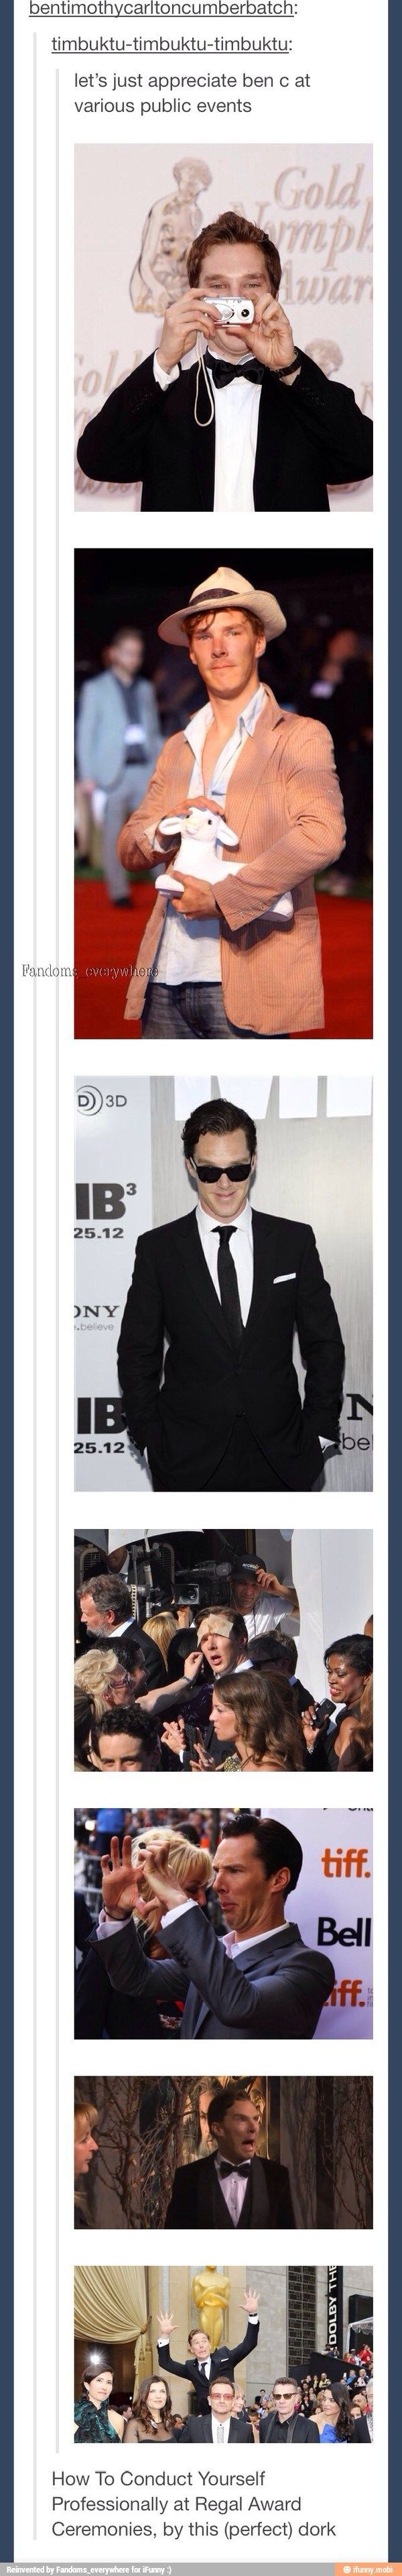 Someone invite this man to more public events. Benedict Cumberbatch!!! :) Winlock till the end!